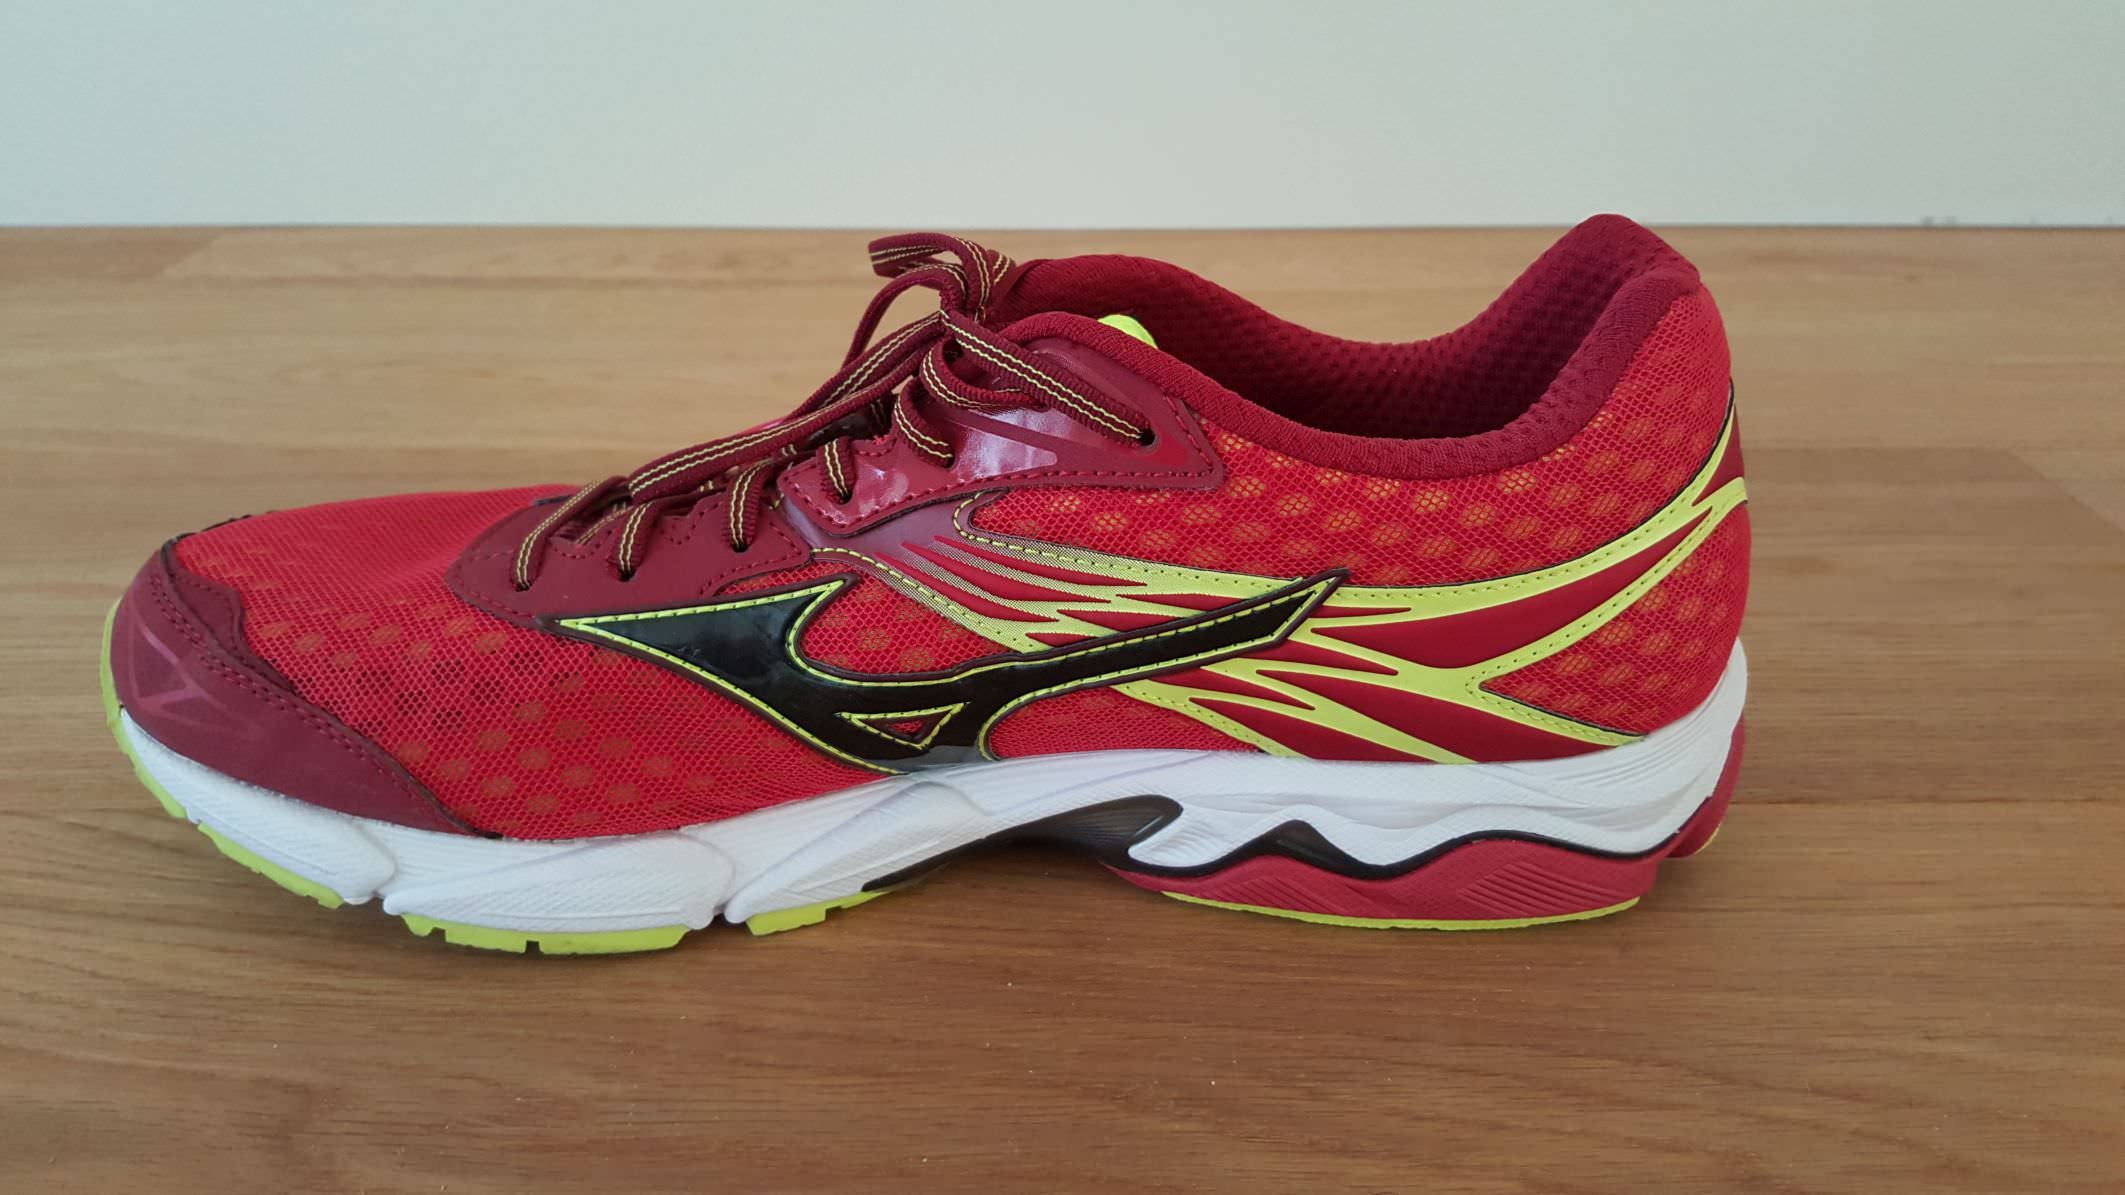 6f1d8af927fc Mizuno Wave Catalyst Review | Running Shoes Guru